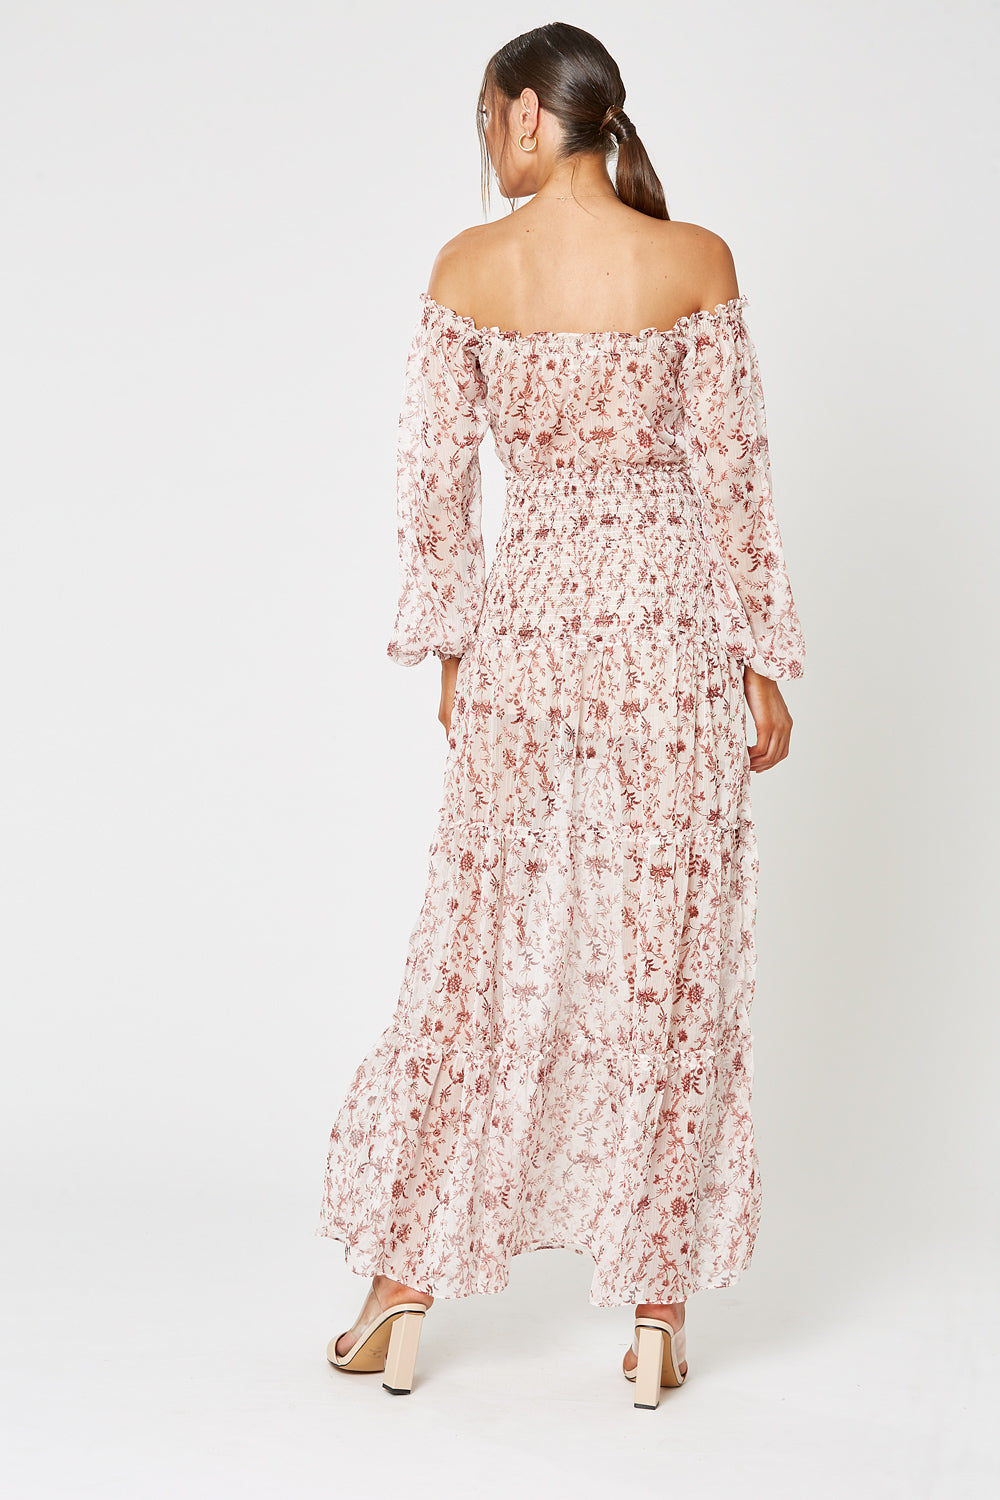 ETUDE OFF THE SHOULDER DRESS